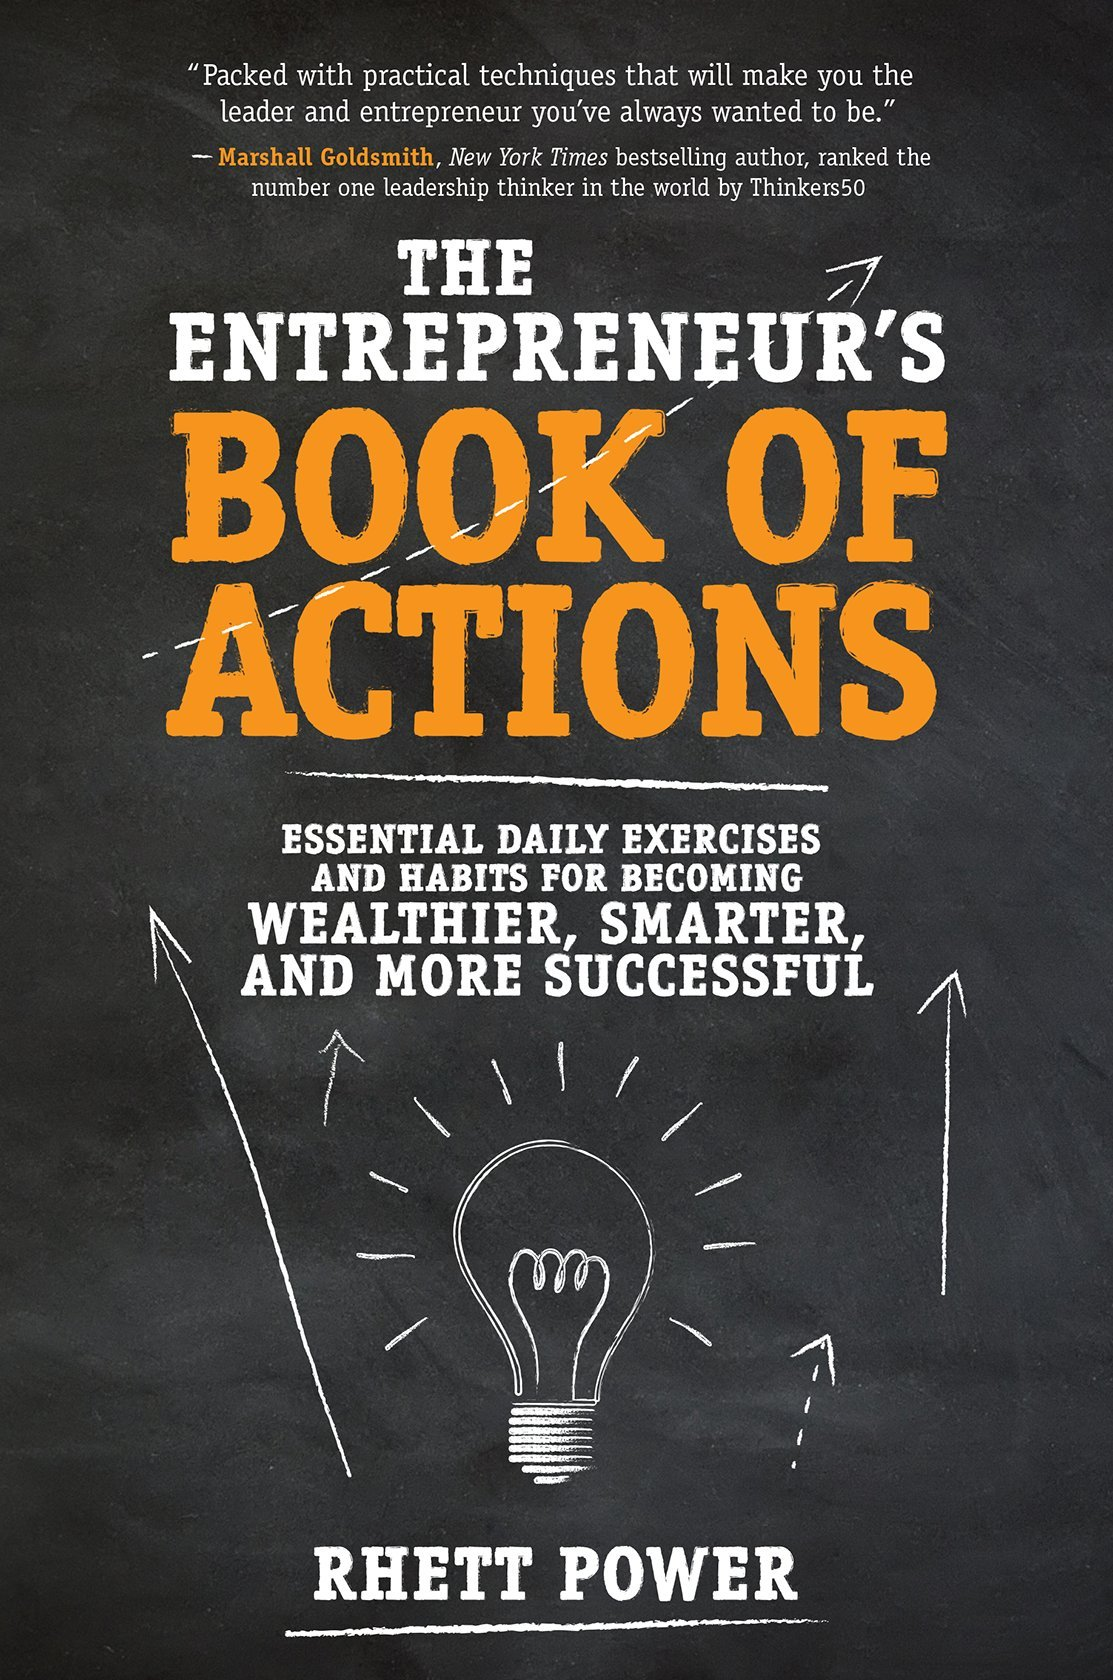 The Entrepreneurs Book Of Actions Essential Daily Exercises And Habits For Becoming Wealthier Smarter And More Successful Rhett Power 9781259859175